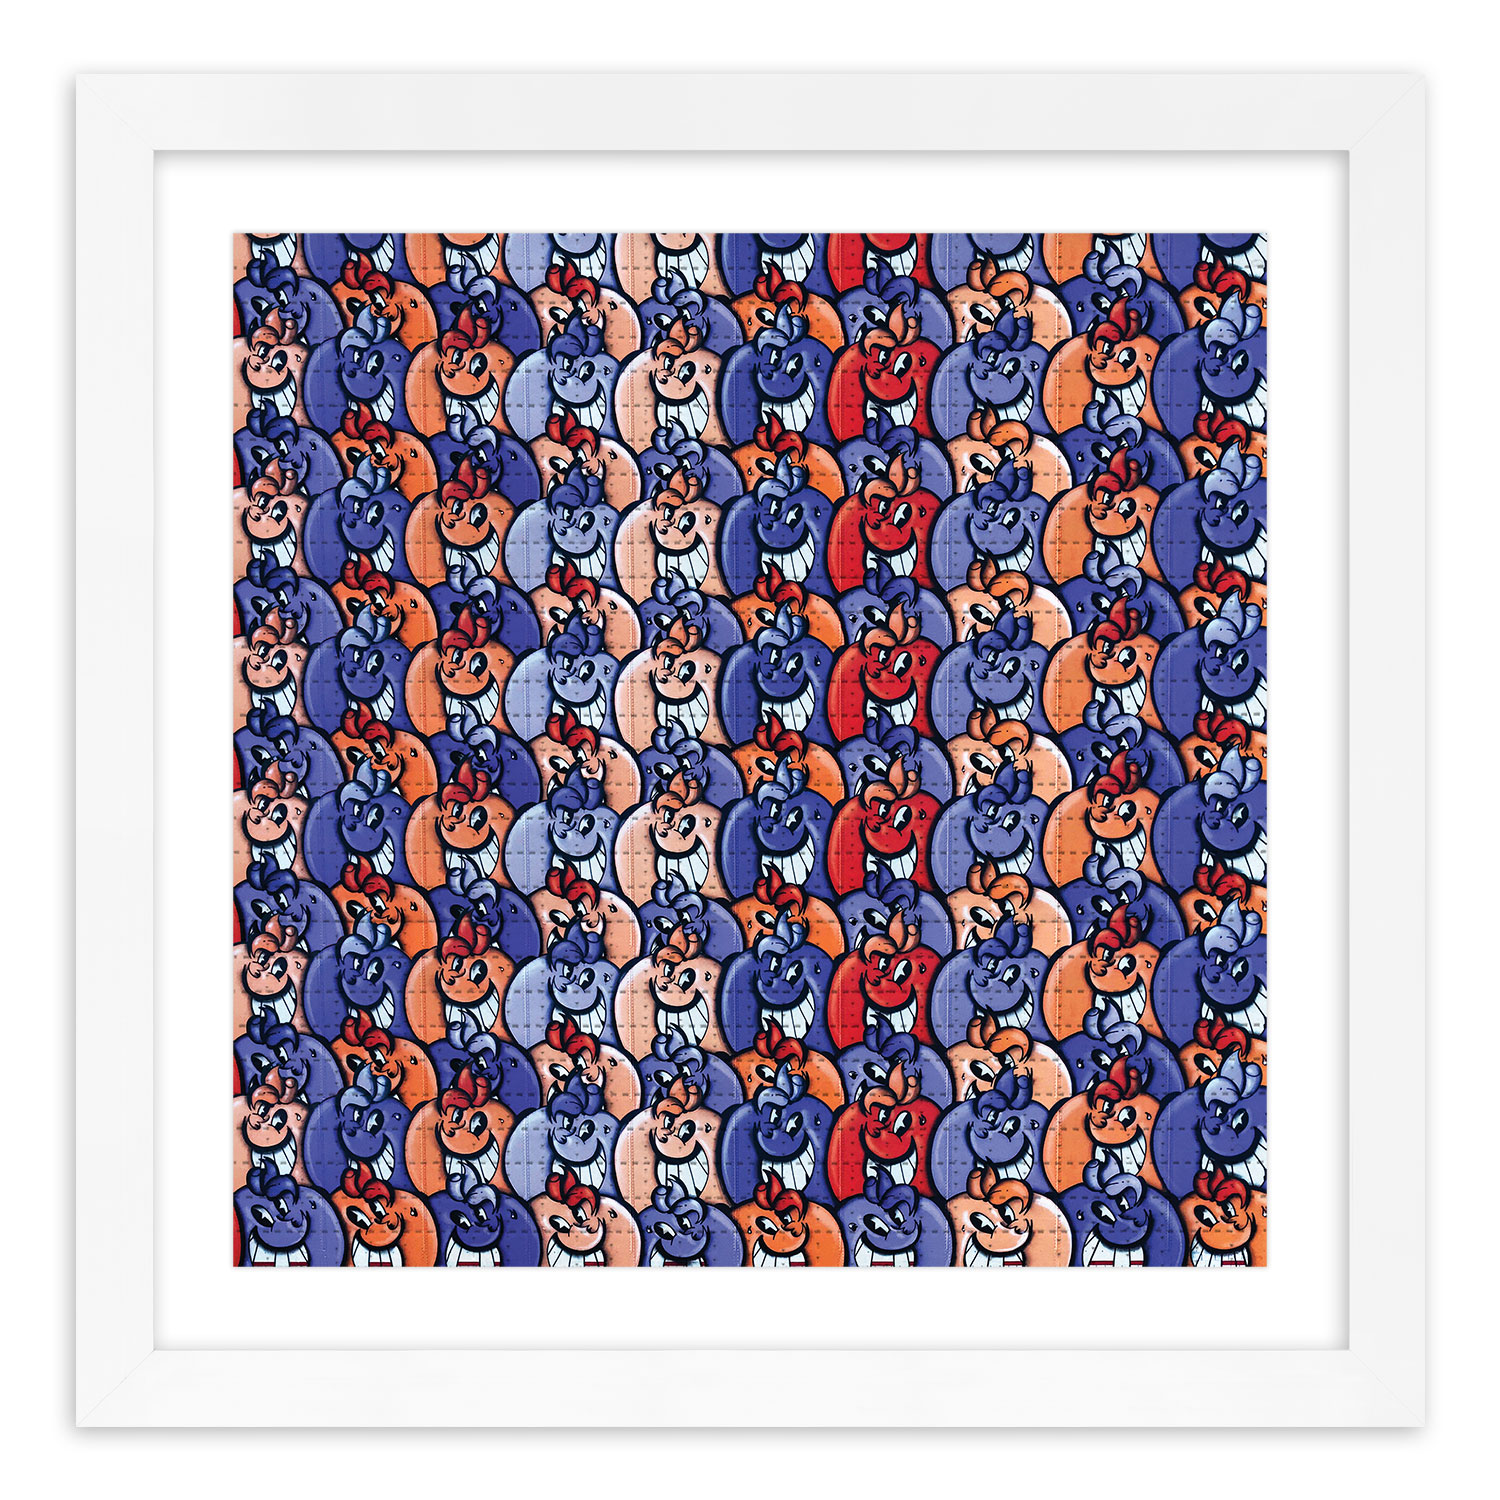 Atomik Art Print - Untitled I - Blotter Edition